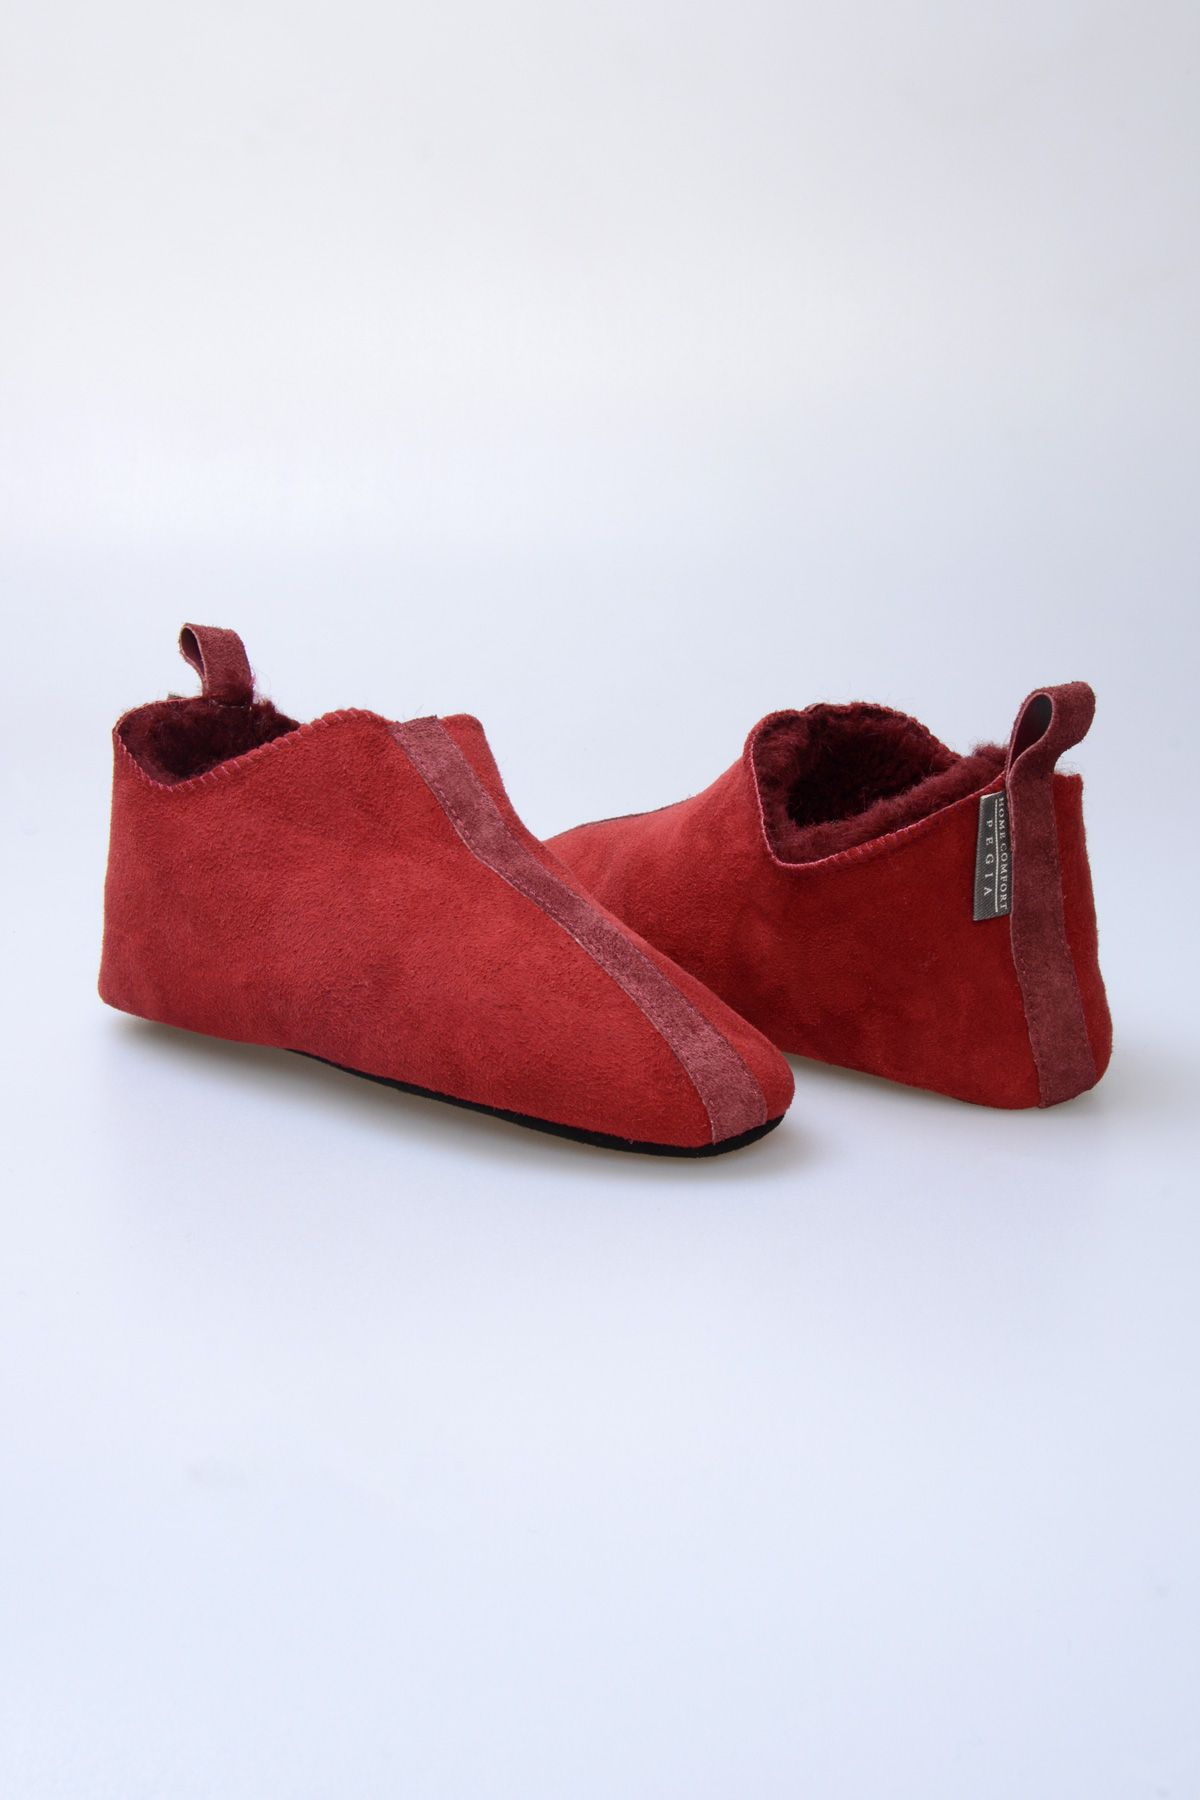 Pegia Original Fur Ladies Home Shoes 980571 Claret red